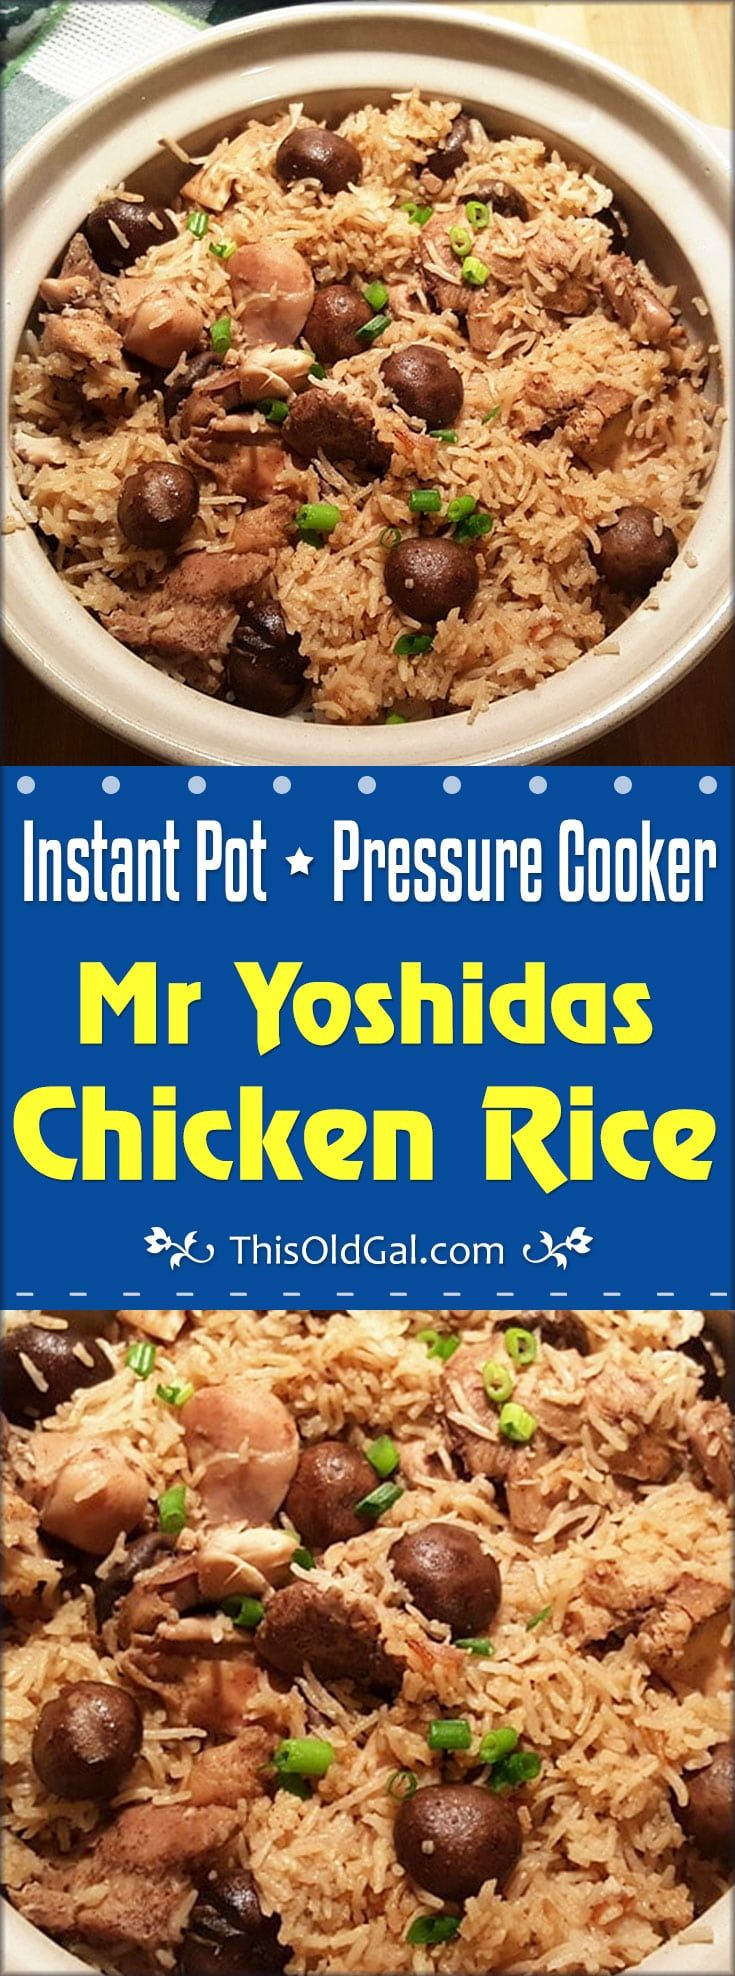 Pressure Cooker Mr Yoshidas Chicken Rice is a quicker version of my Pressure Cooker One Pot Chicken and Rice recipe for moms and dads on the go. via @thisoldgalcooks